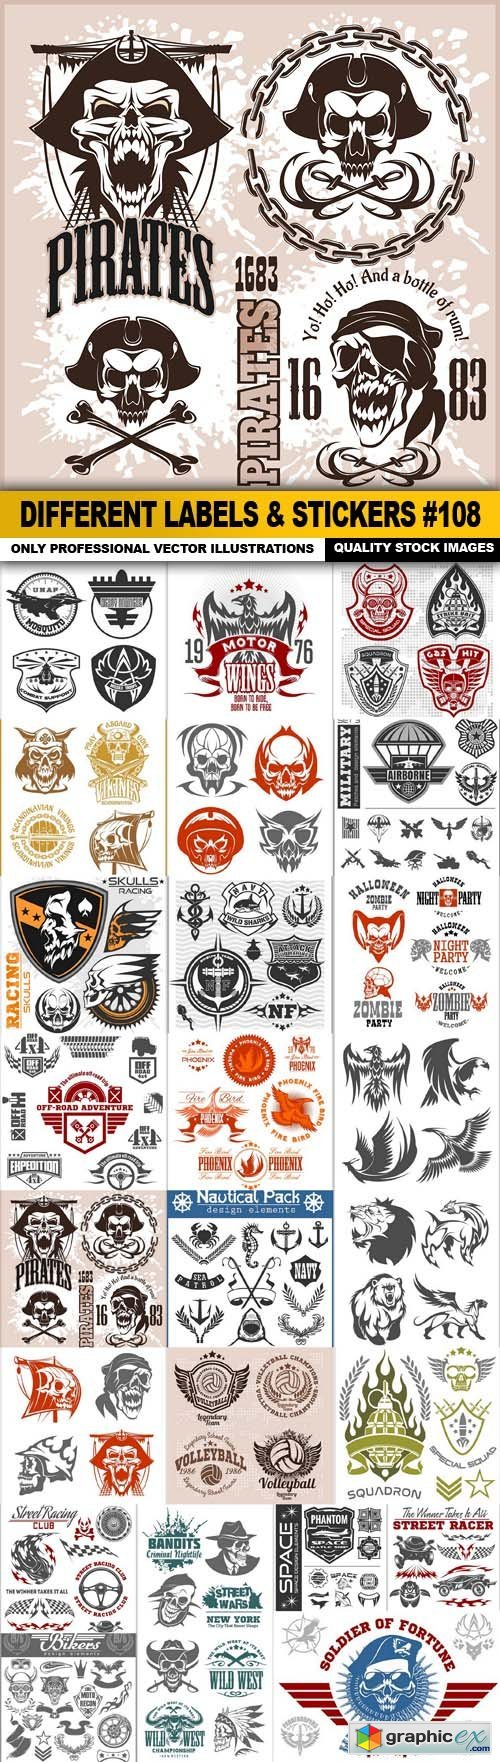 Different Labels & Stickers #108 - 25 Vector